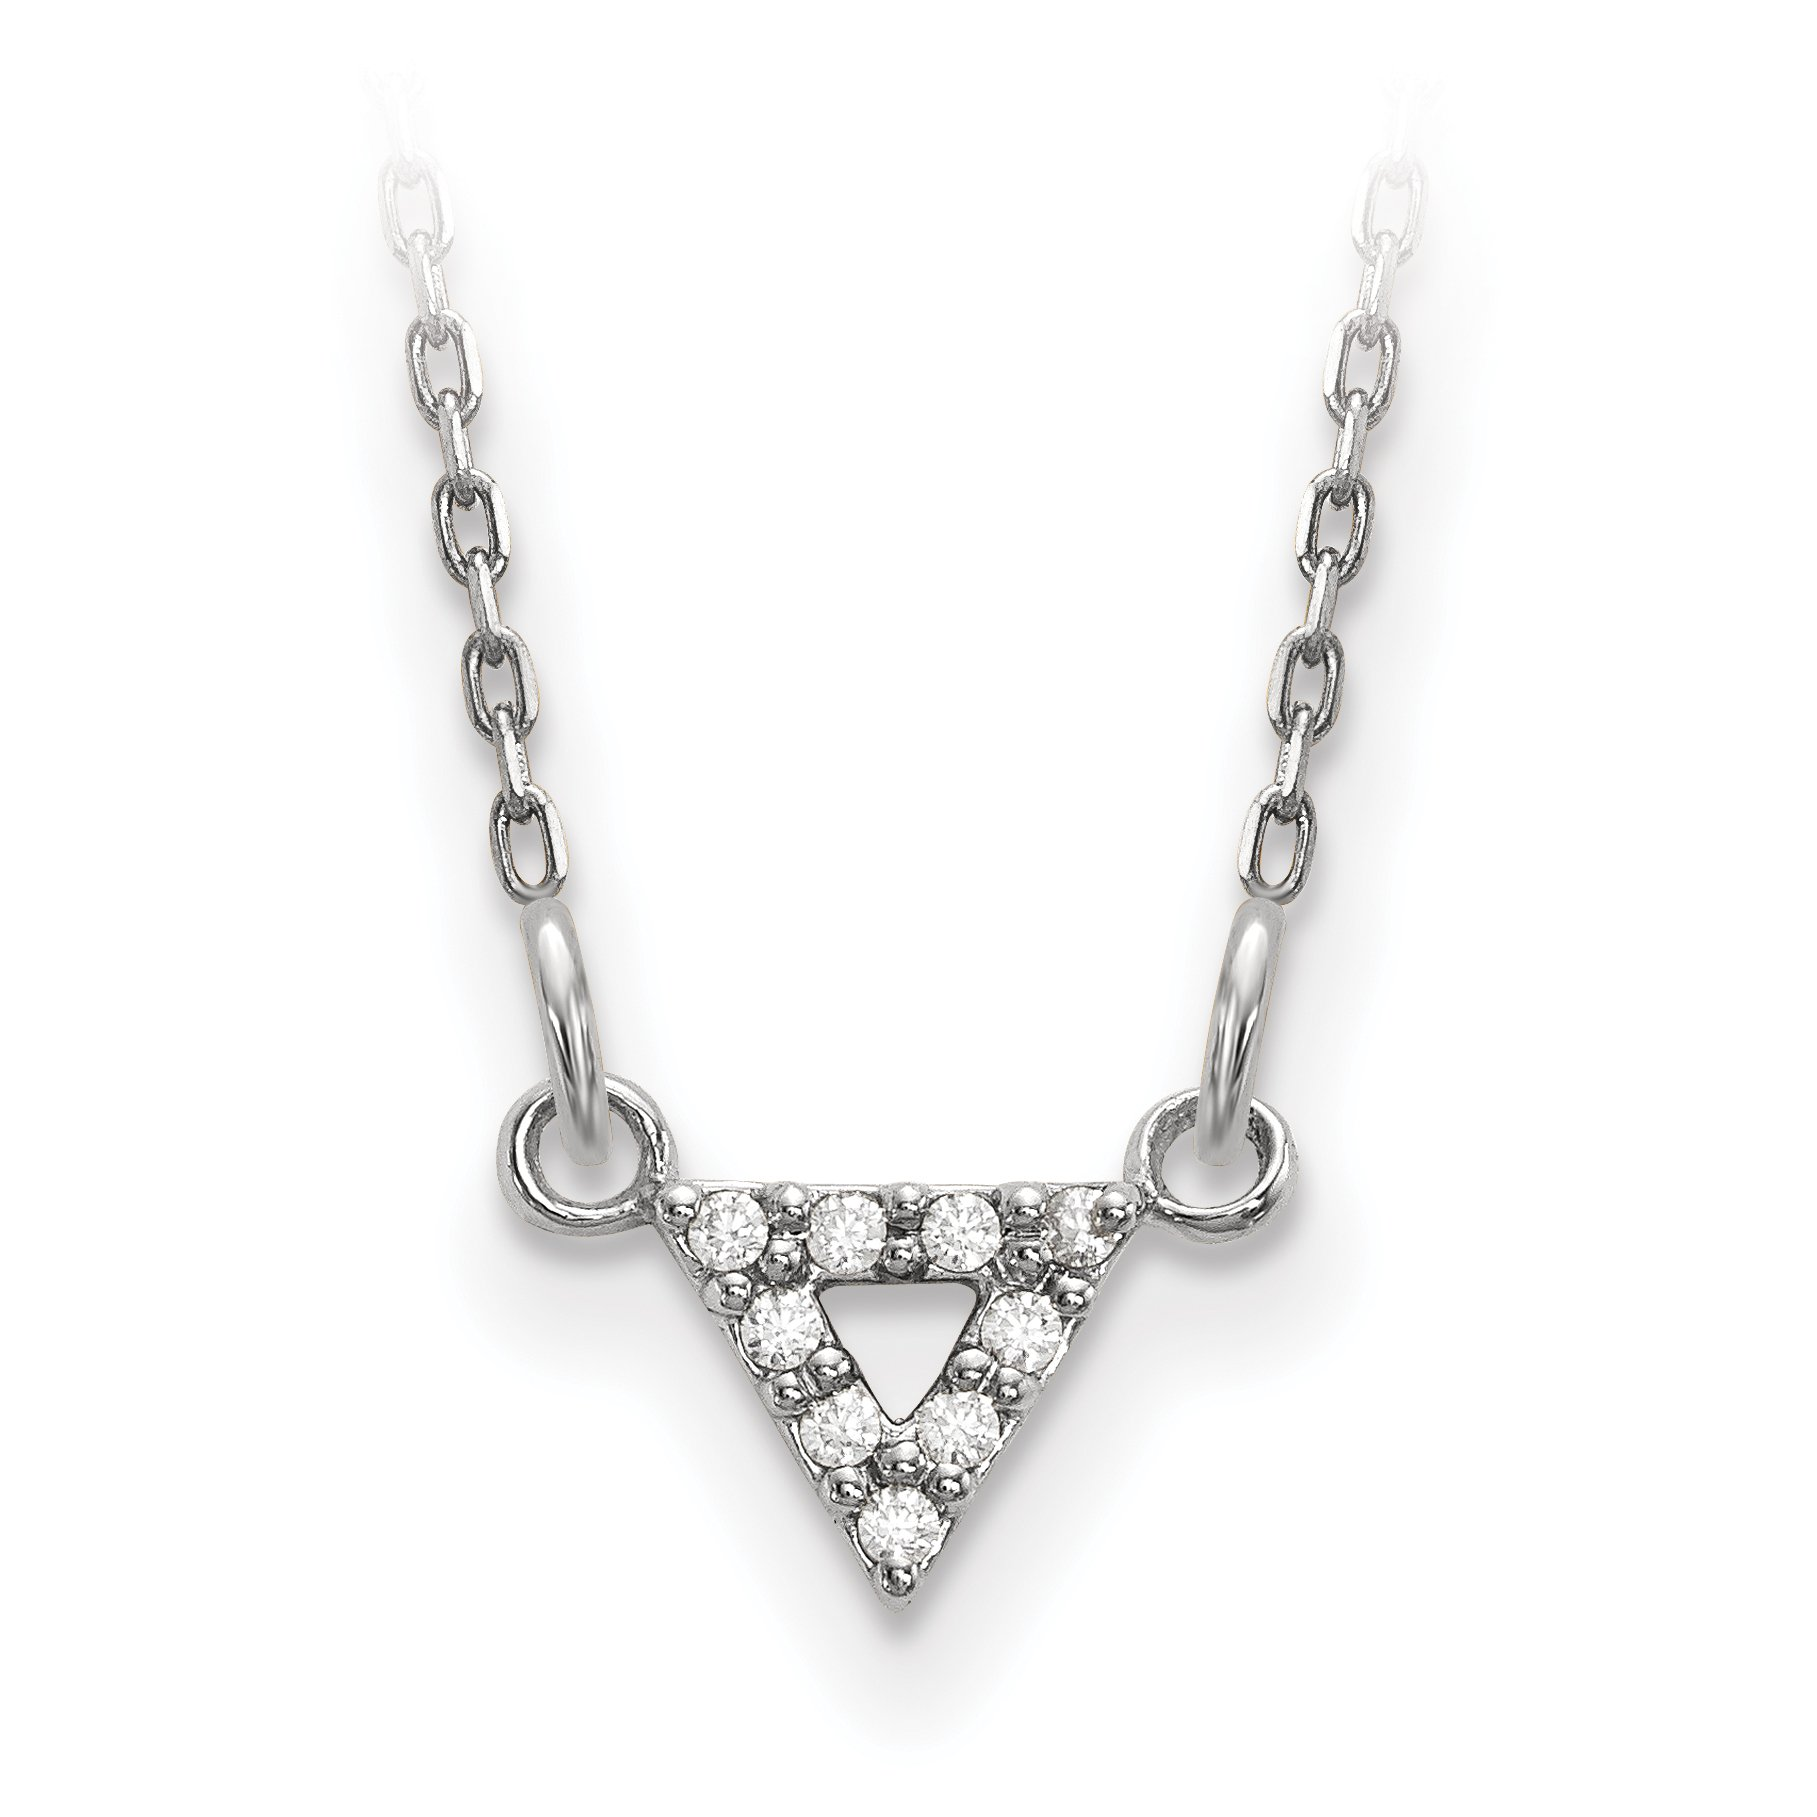 ICE CARATS 14k White Gold Qualiity Diamond 6mm Triangle Chain Necklace Contemporary Fine Jewelry Gift Set For Women Heart